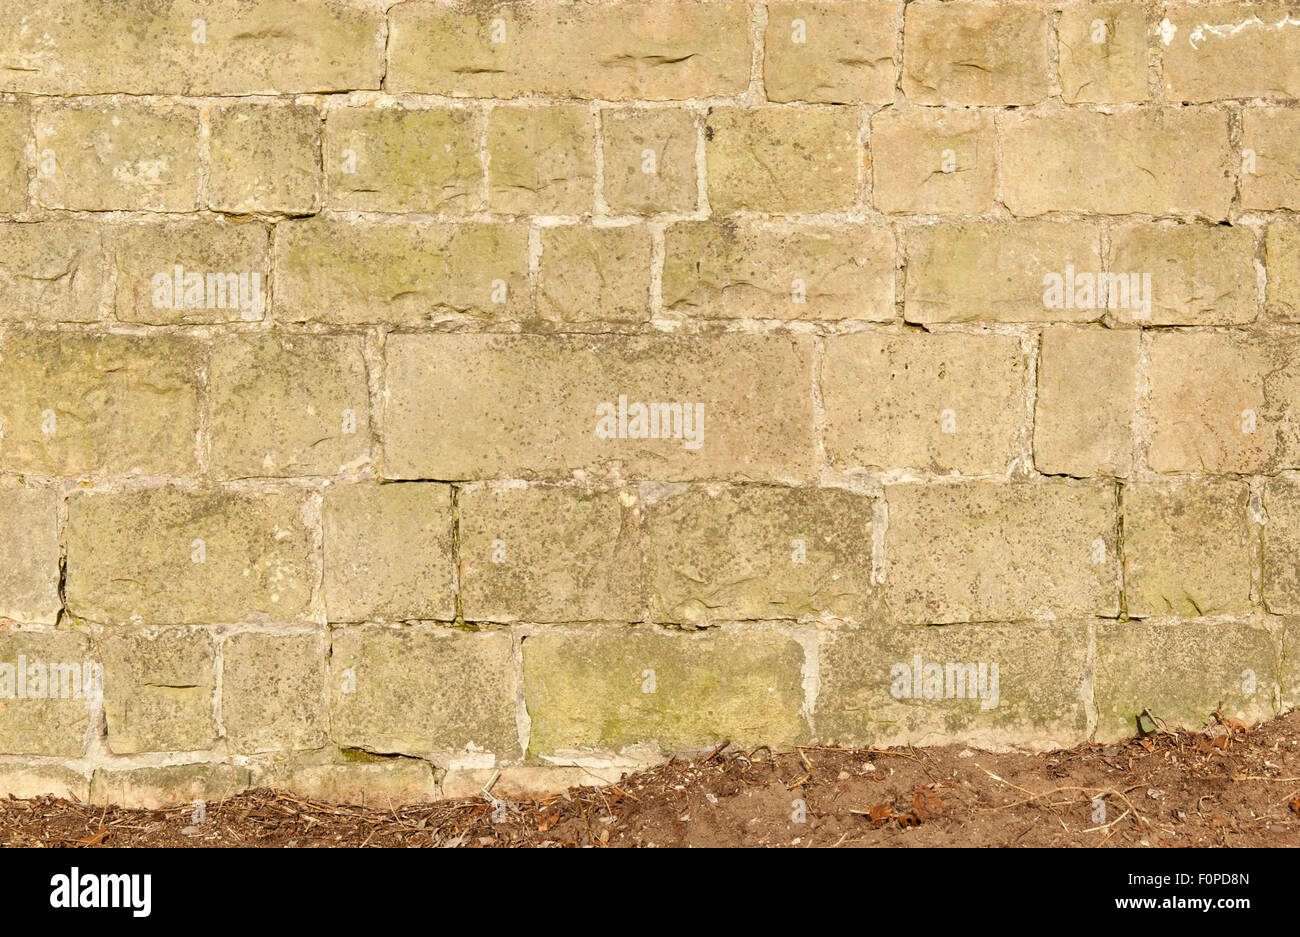 Brick And Limestone Stock Photos & Brick And Limestone Stock Images ...